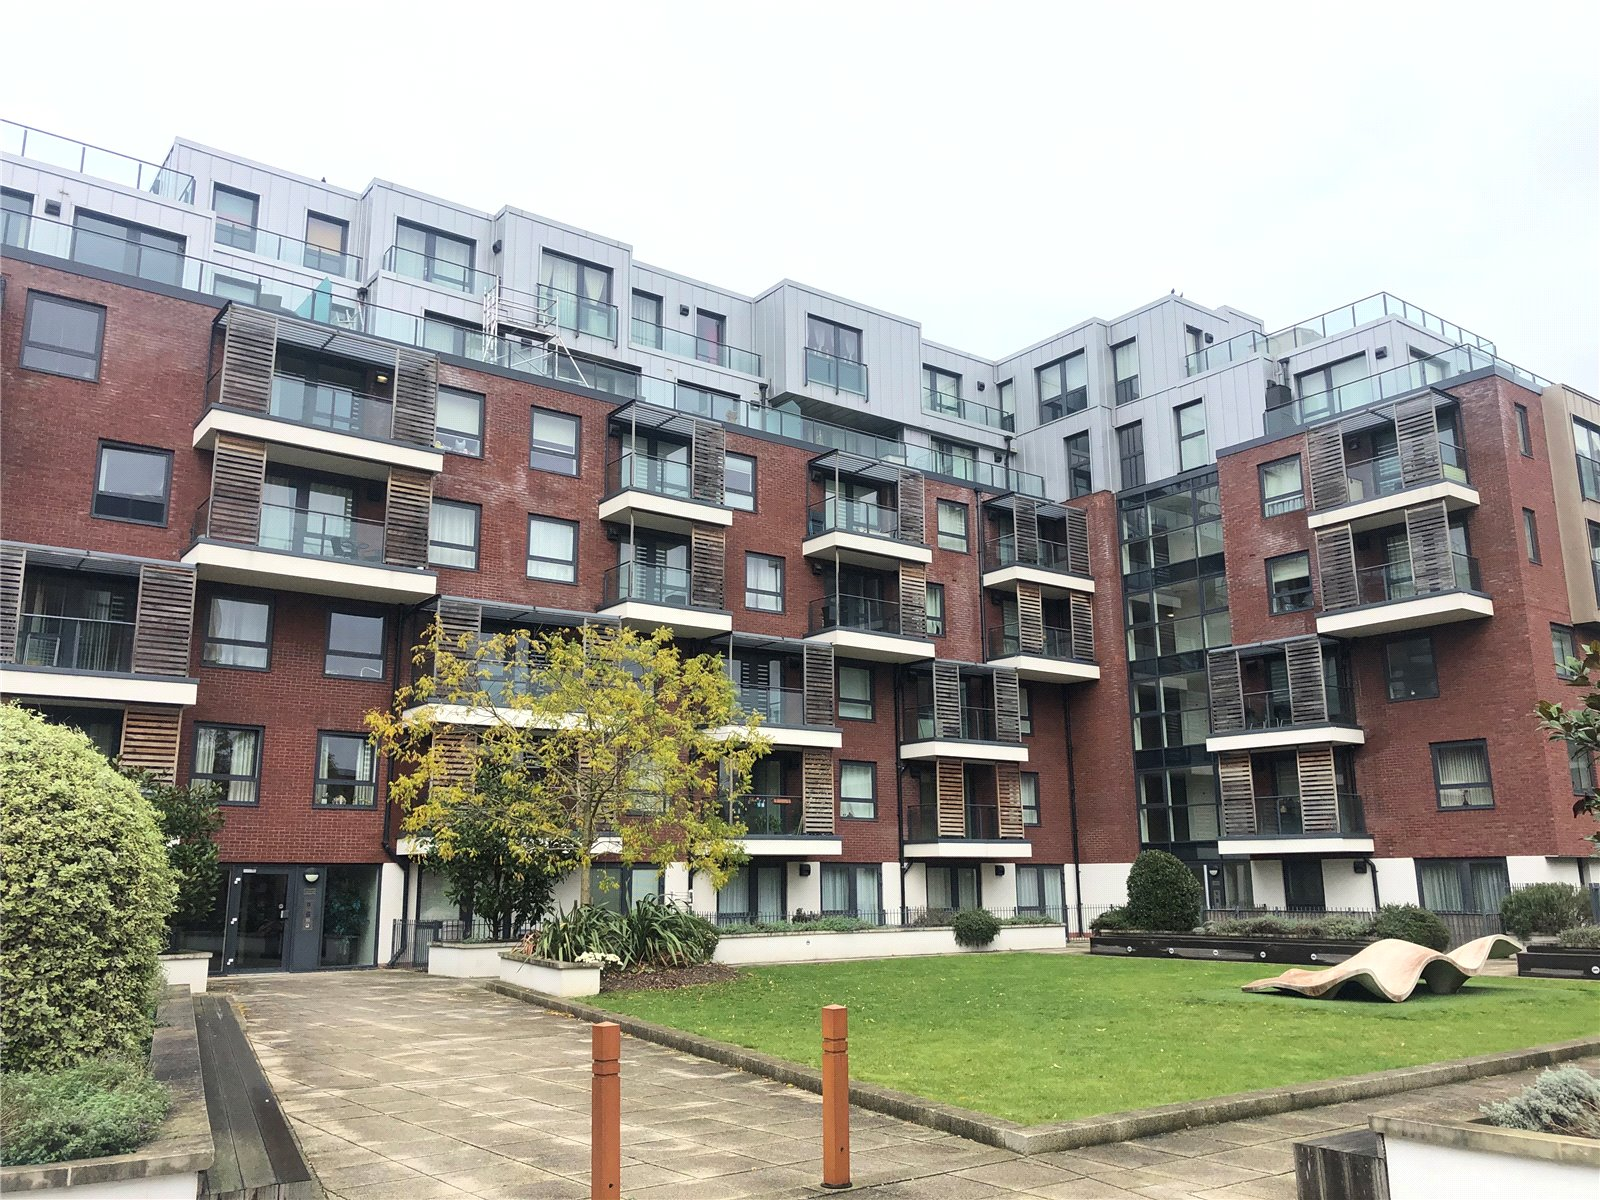 Brunel Court, 201 Green Lane, Edgware HA8